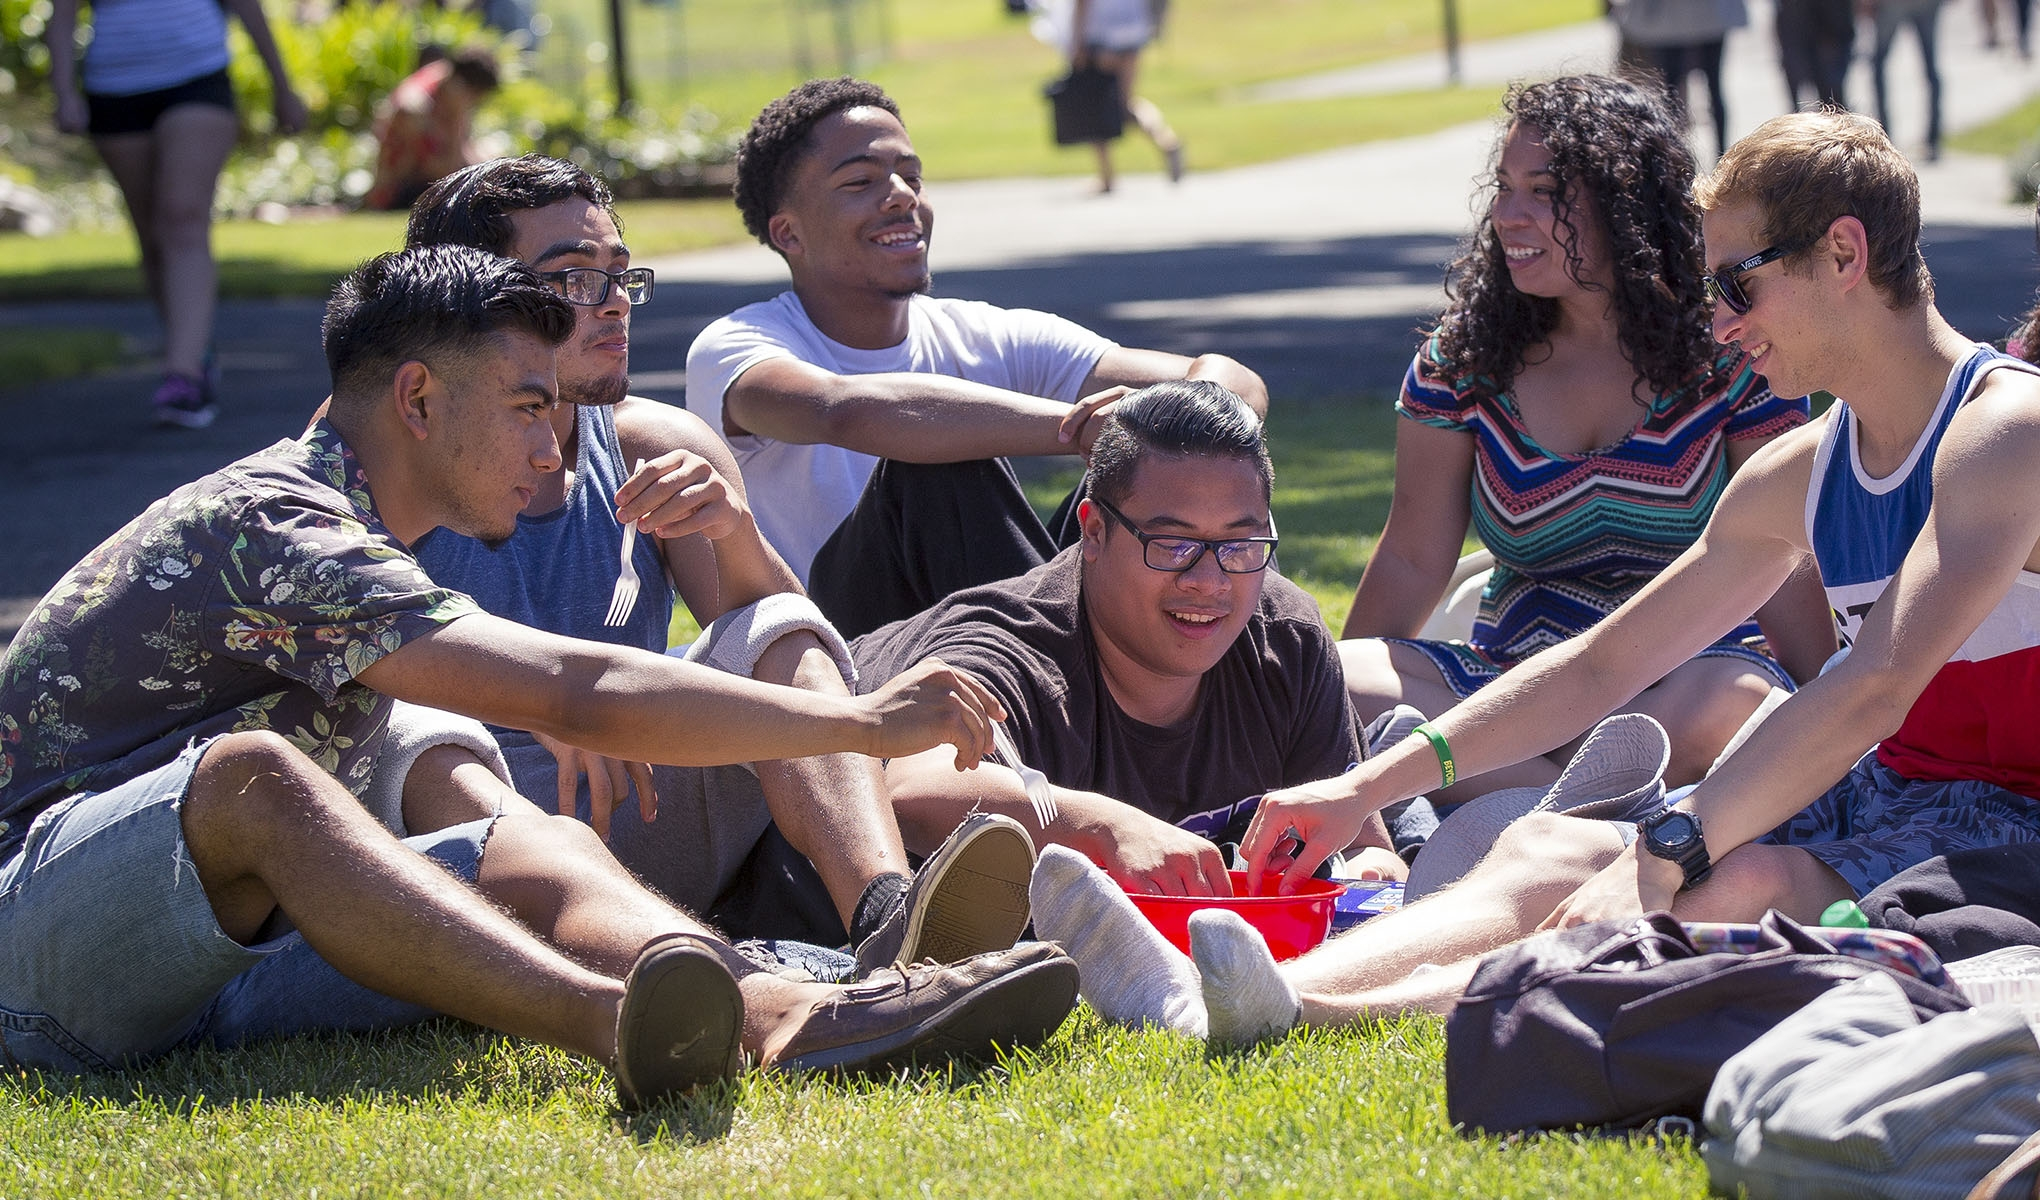 Students hanging out on a grassy field picking snacks from a red bowl